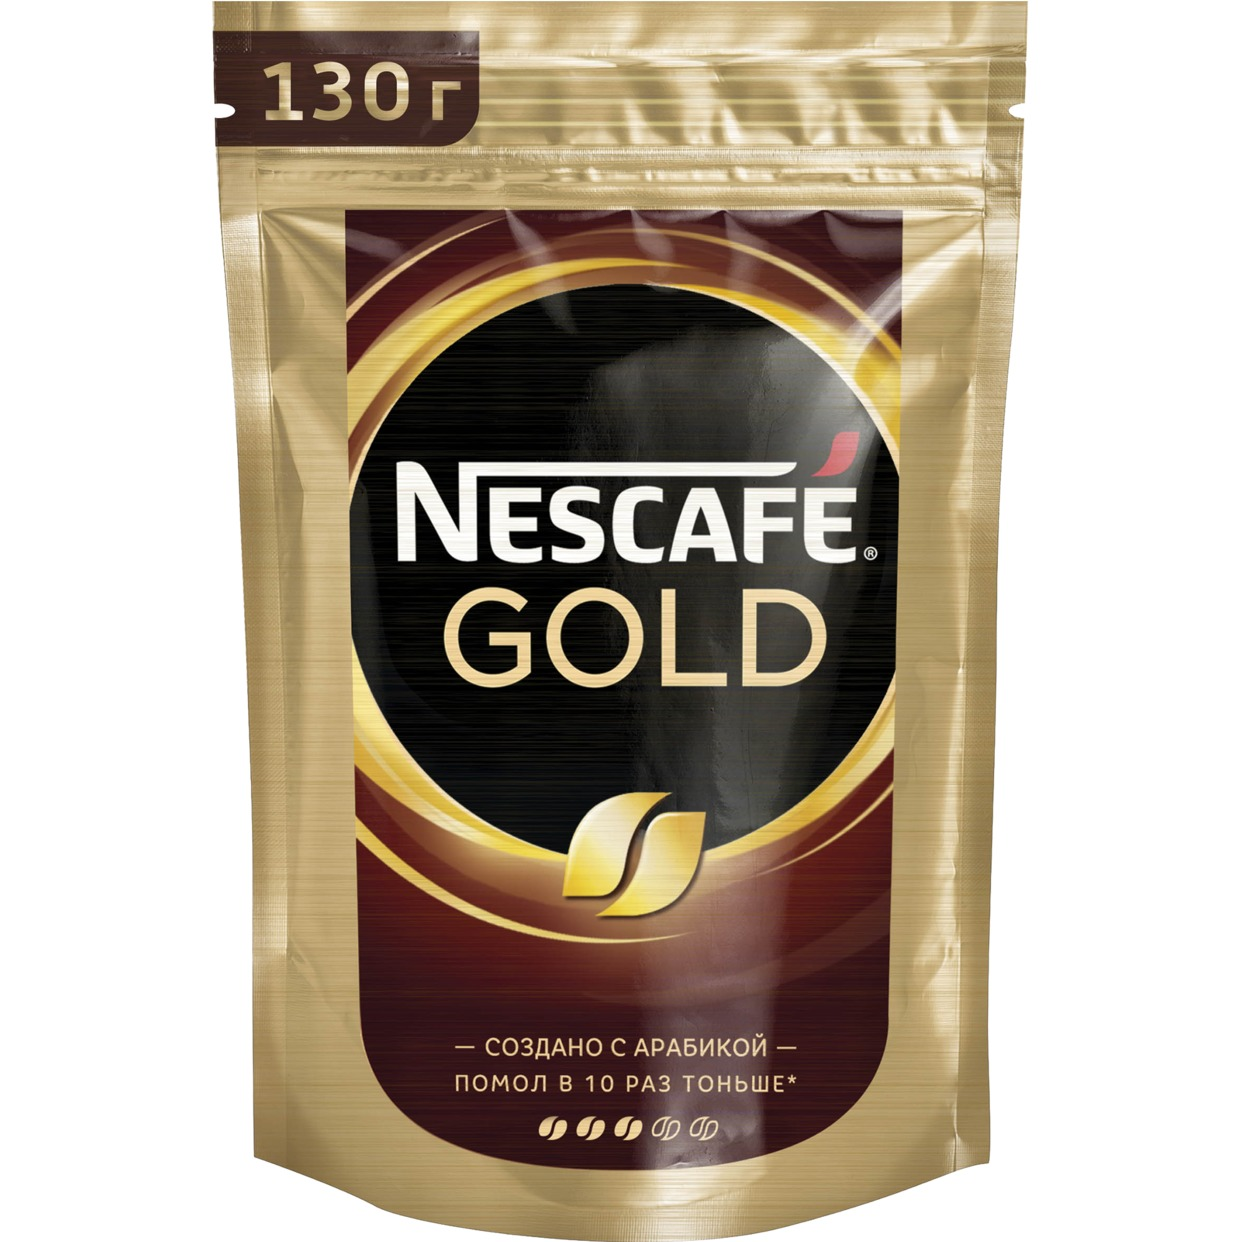 NESCAFE GOLD. НАТУРАЛЬНЫЙ РАСТВОРИМЫЙ СУБЛИМИРОВАННЫЙ КОФЕ С ДОБАВЛЕНИЕМ НАТУРАЛЬНОГО ЖАРЕНОГО МОЛОТОГО КОФЕ 130 гр